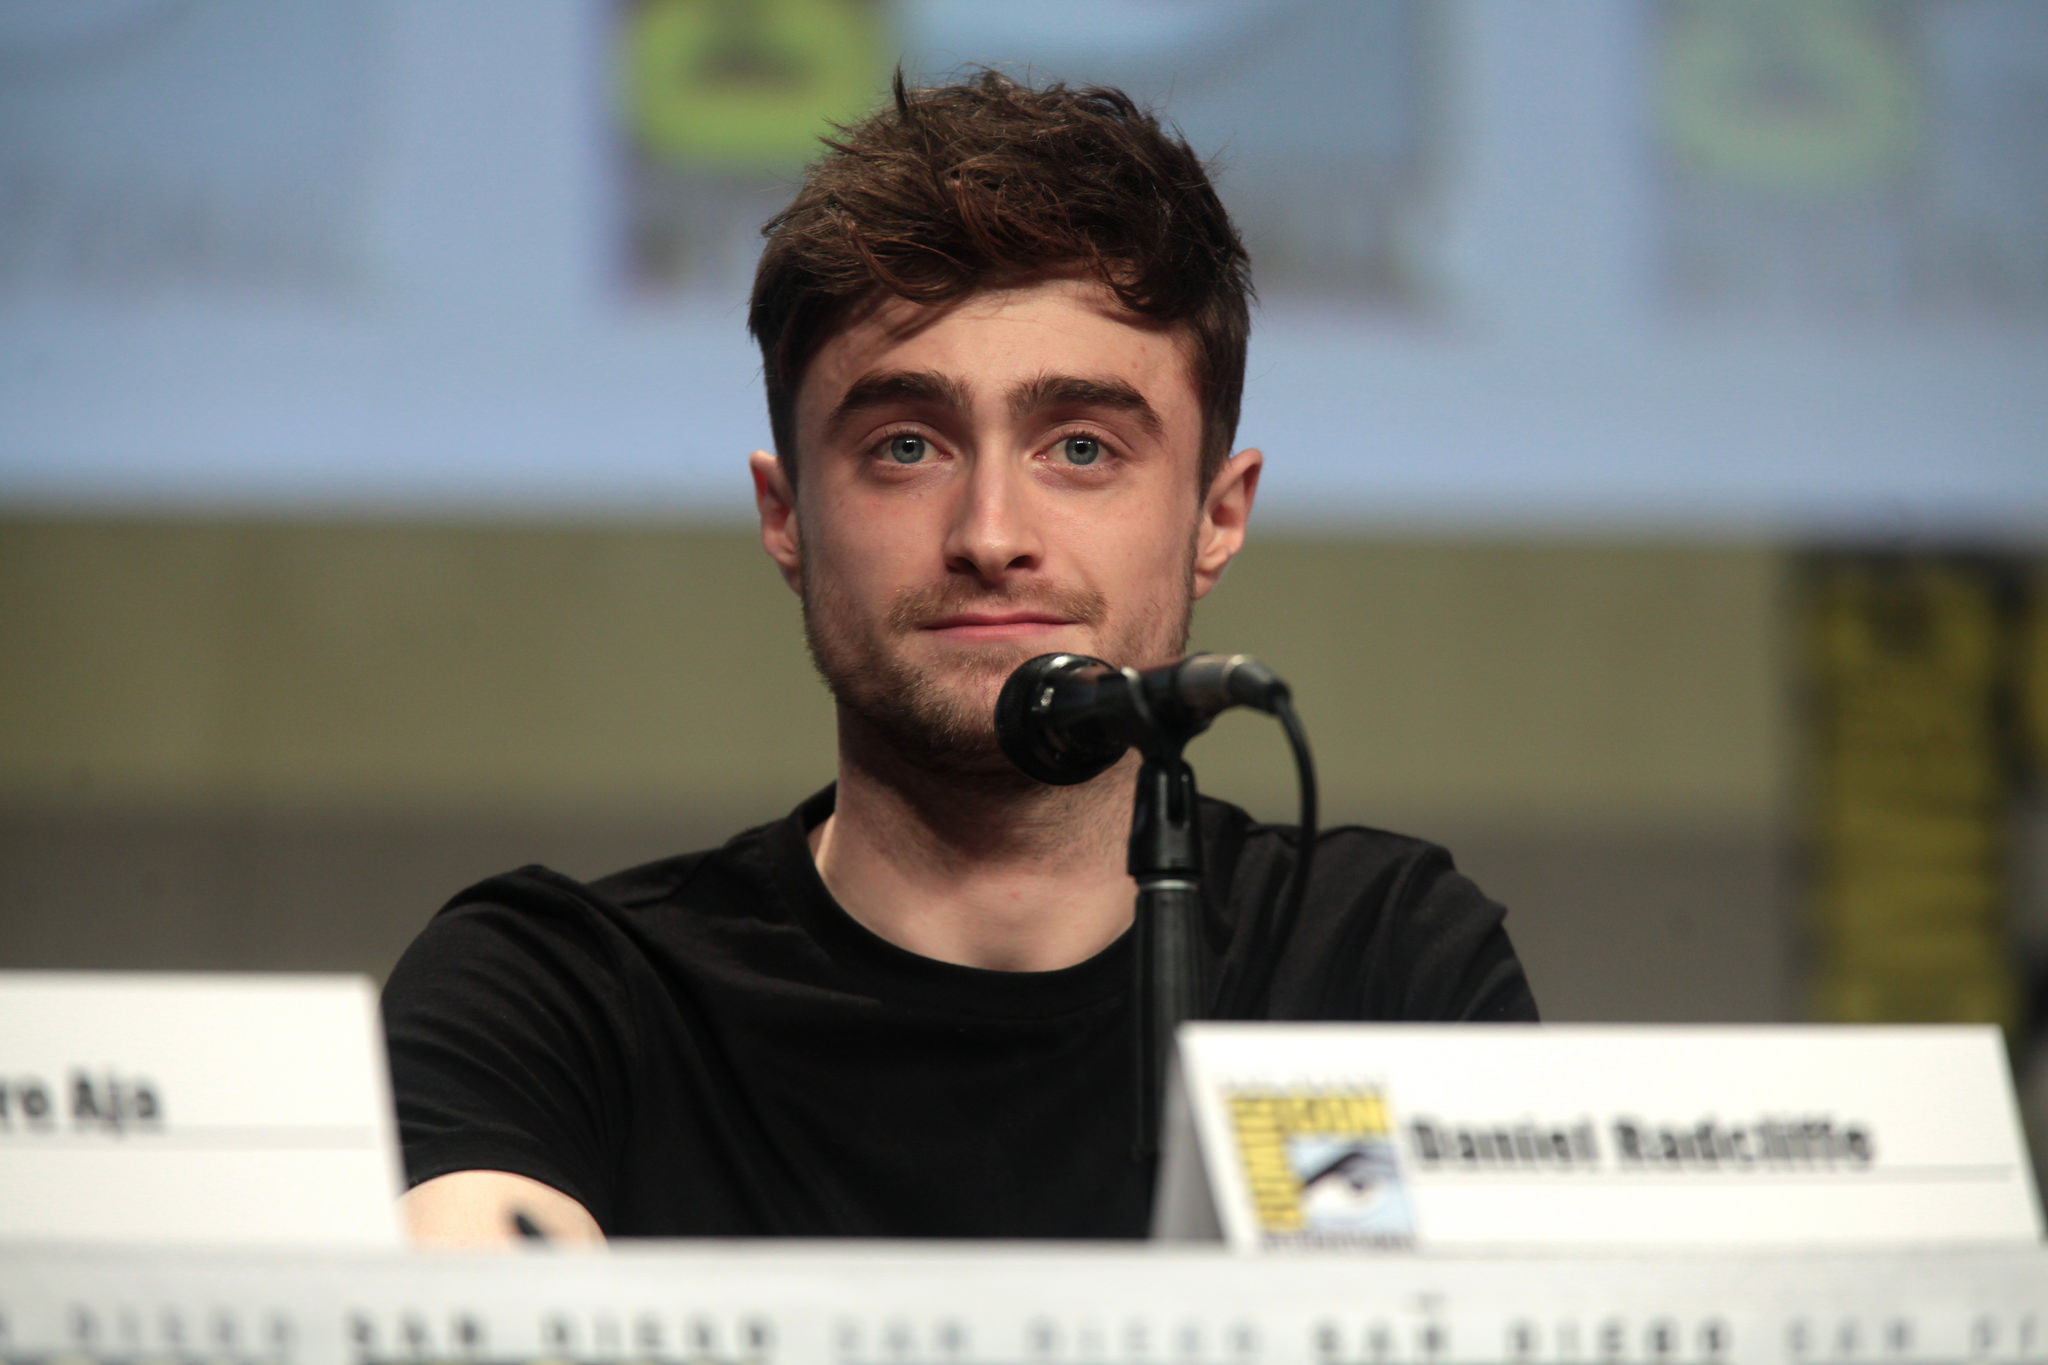 Harry Potter volunteered as a fact-checker for The New Yorker